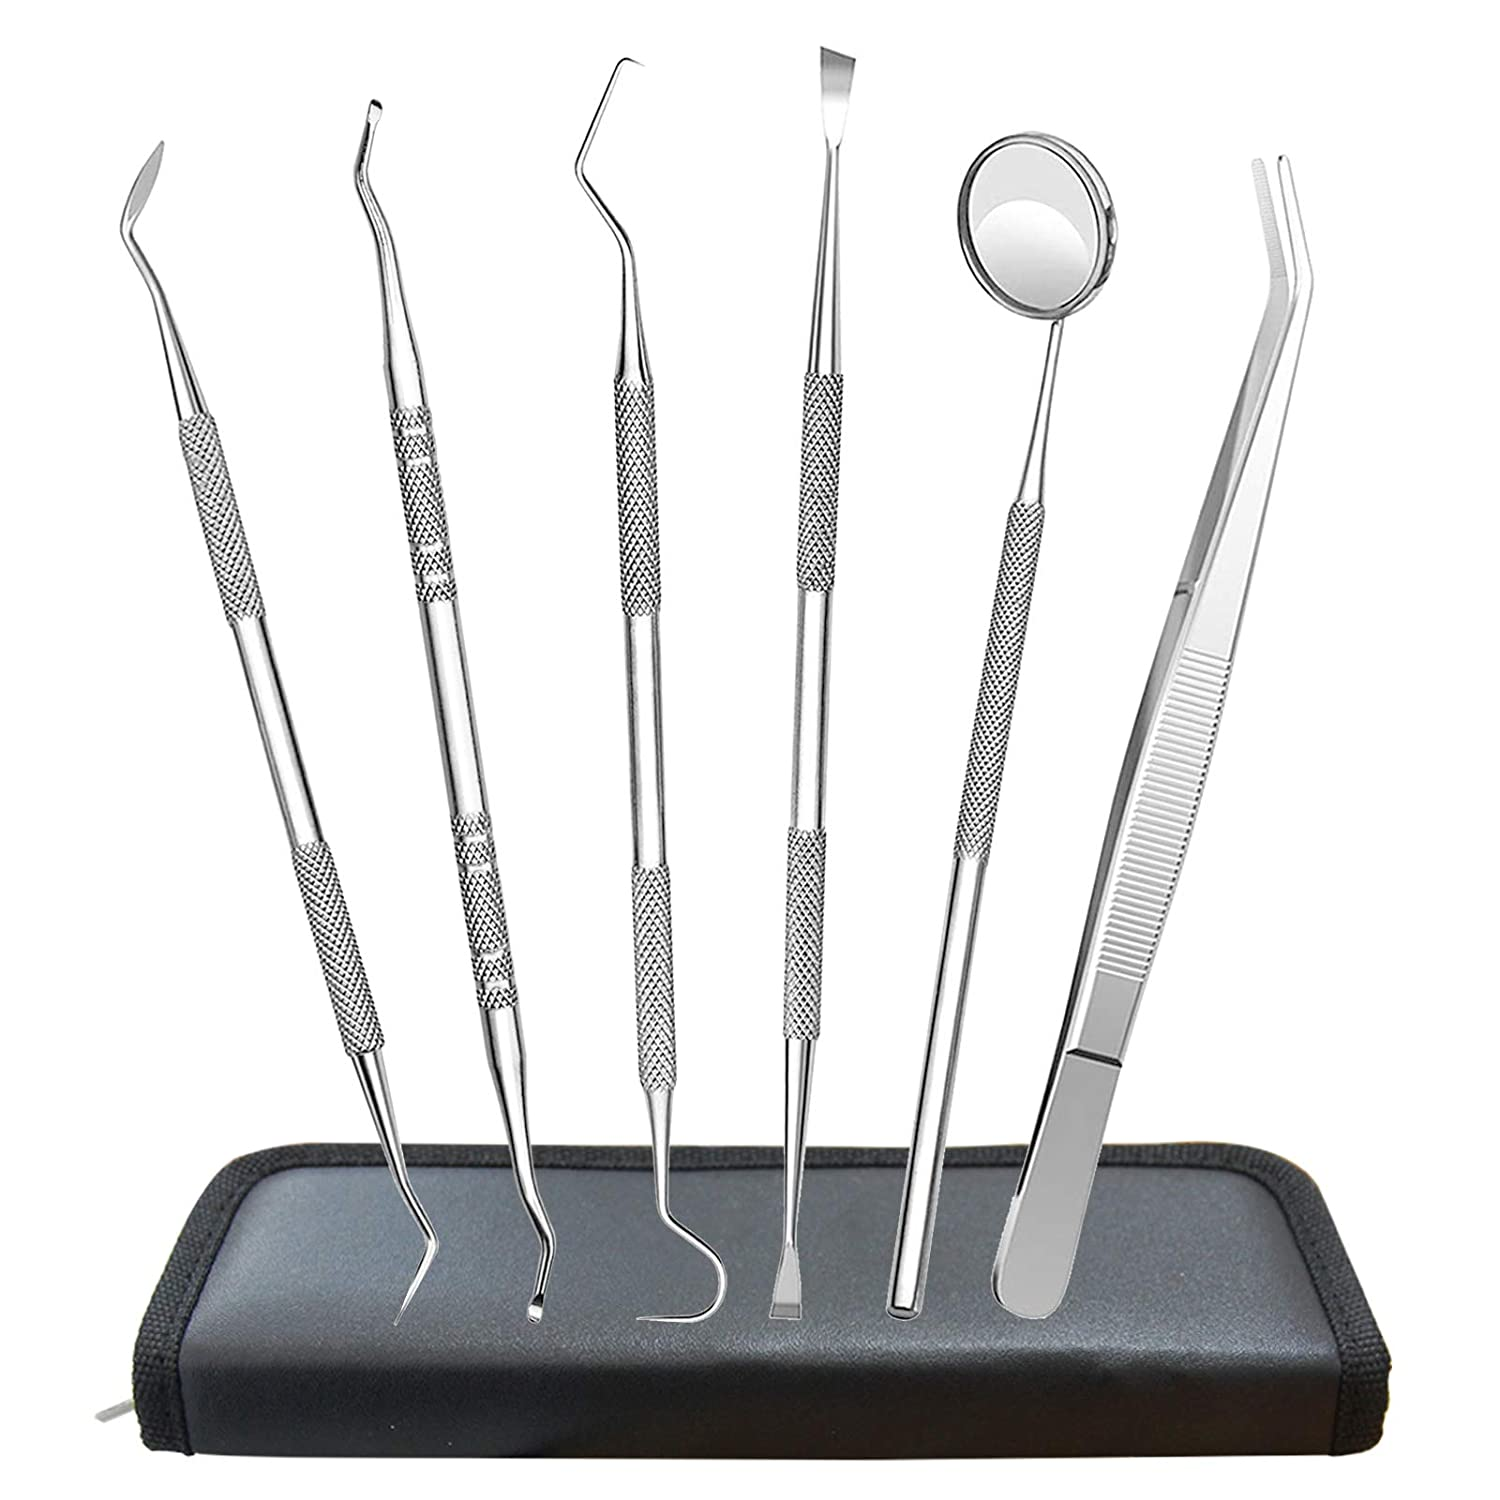 Dental Tools, 6 Pack Dental Picks Teeth Cleaning Oral Care Kit, Stainless Steel Calculus Plaque Remover Hygiene Set, Dental Mirror Tartar Remover Scraper Tooth Pick for Dentist Personal Pet Home Use